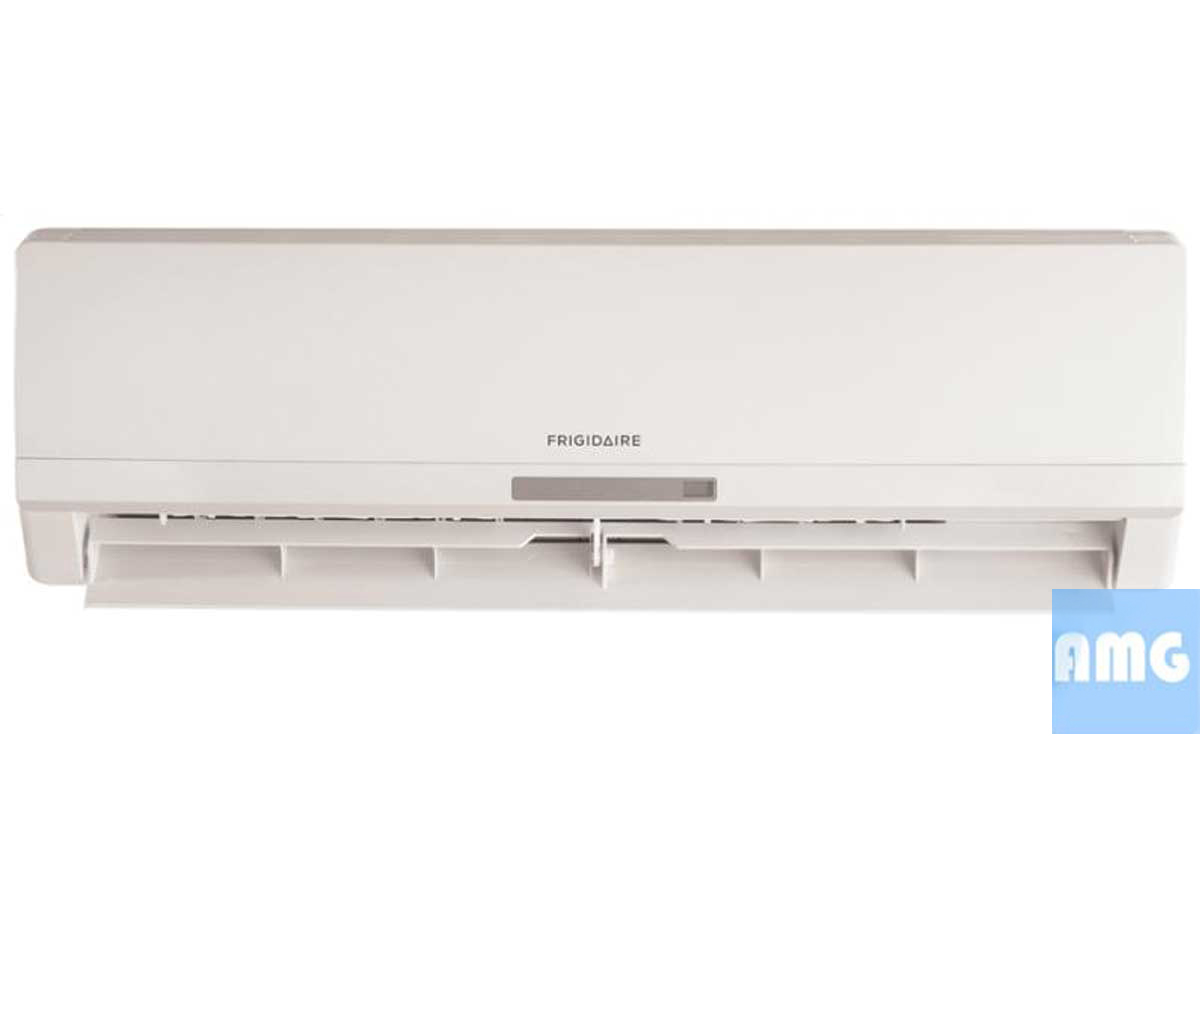 Frigidaire 9k Heat Pump Frs09pys1 Ductless Units Amg Ymgi Wiring Diagram Mini Split Front View